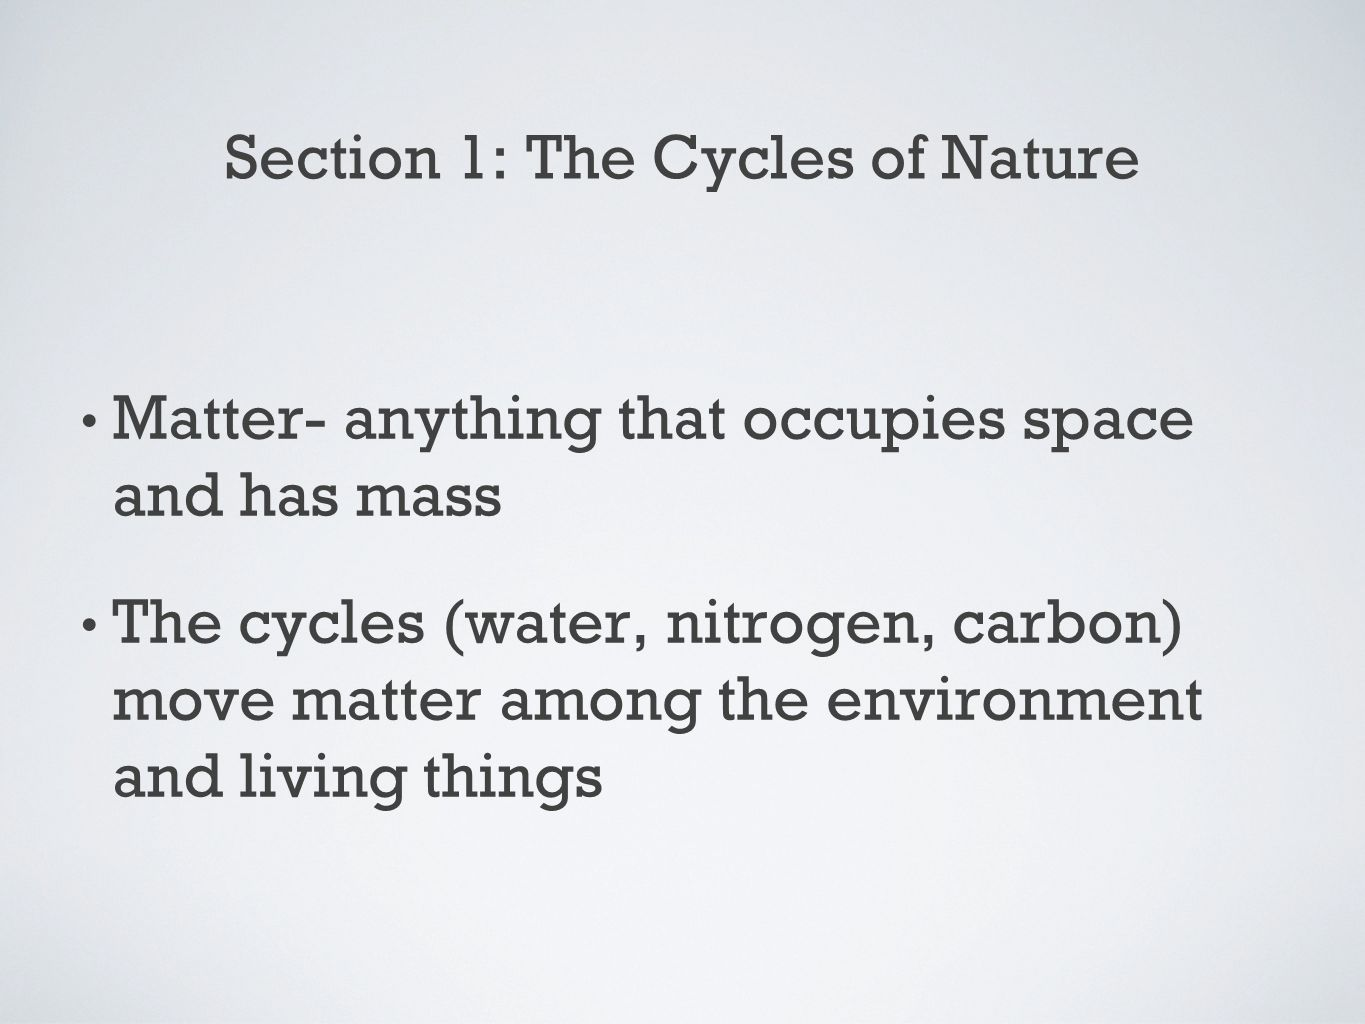 Worksheets Water Carbon And Nitrogen Cycle Worksheet environment chapter 2 cycles in nature ppt download section 1 the of nature